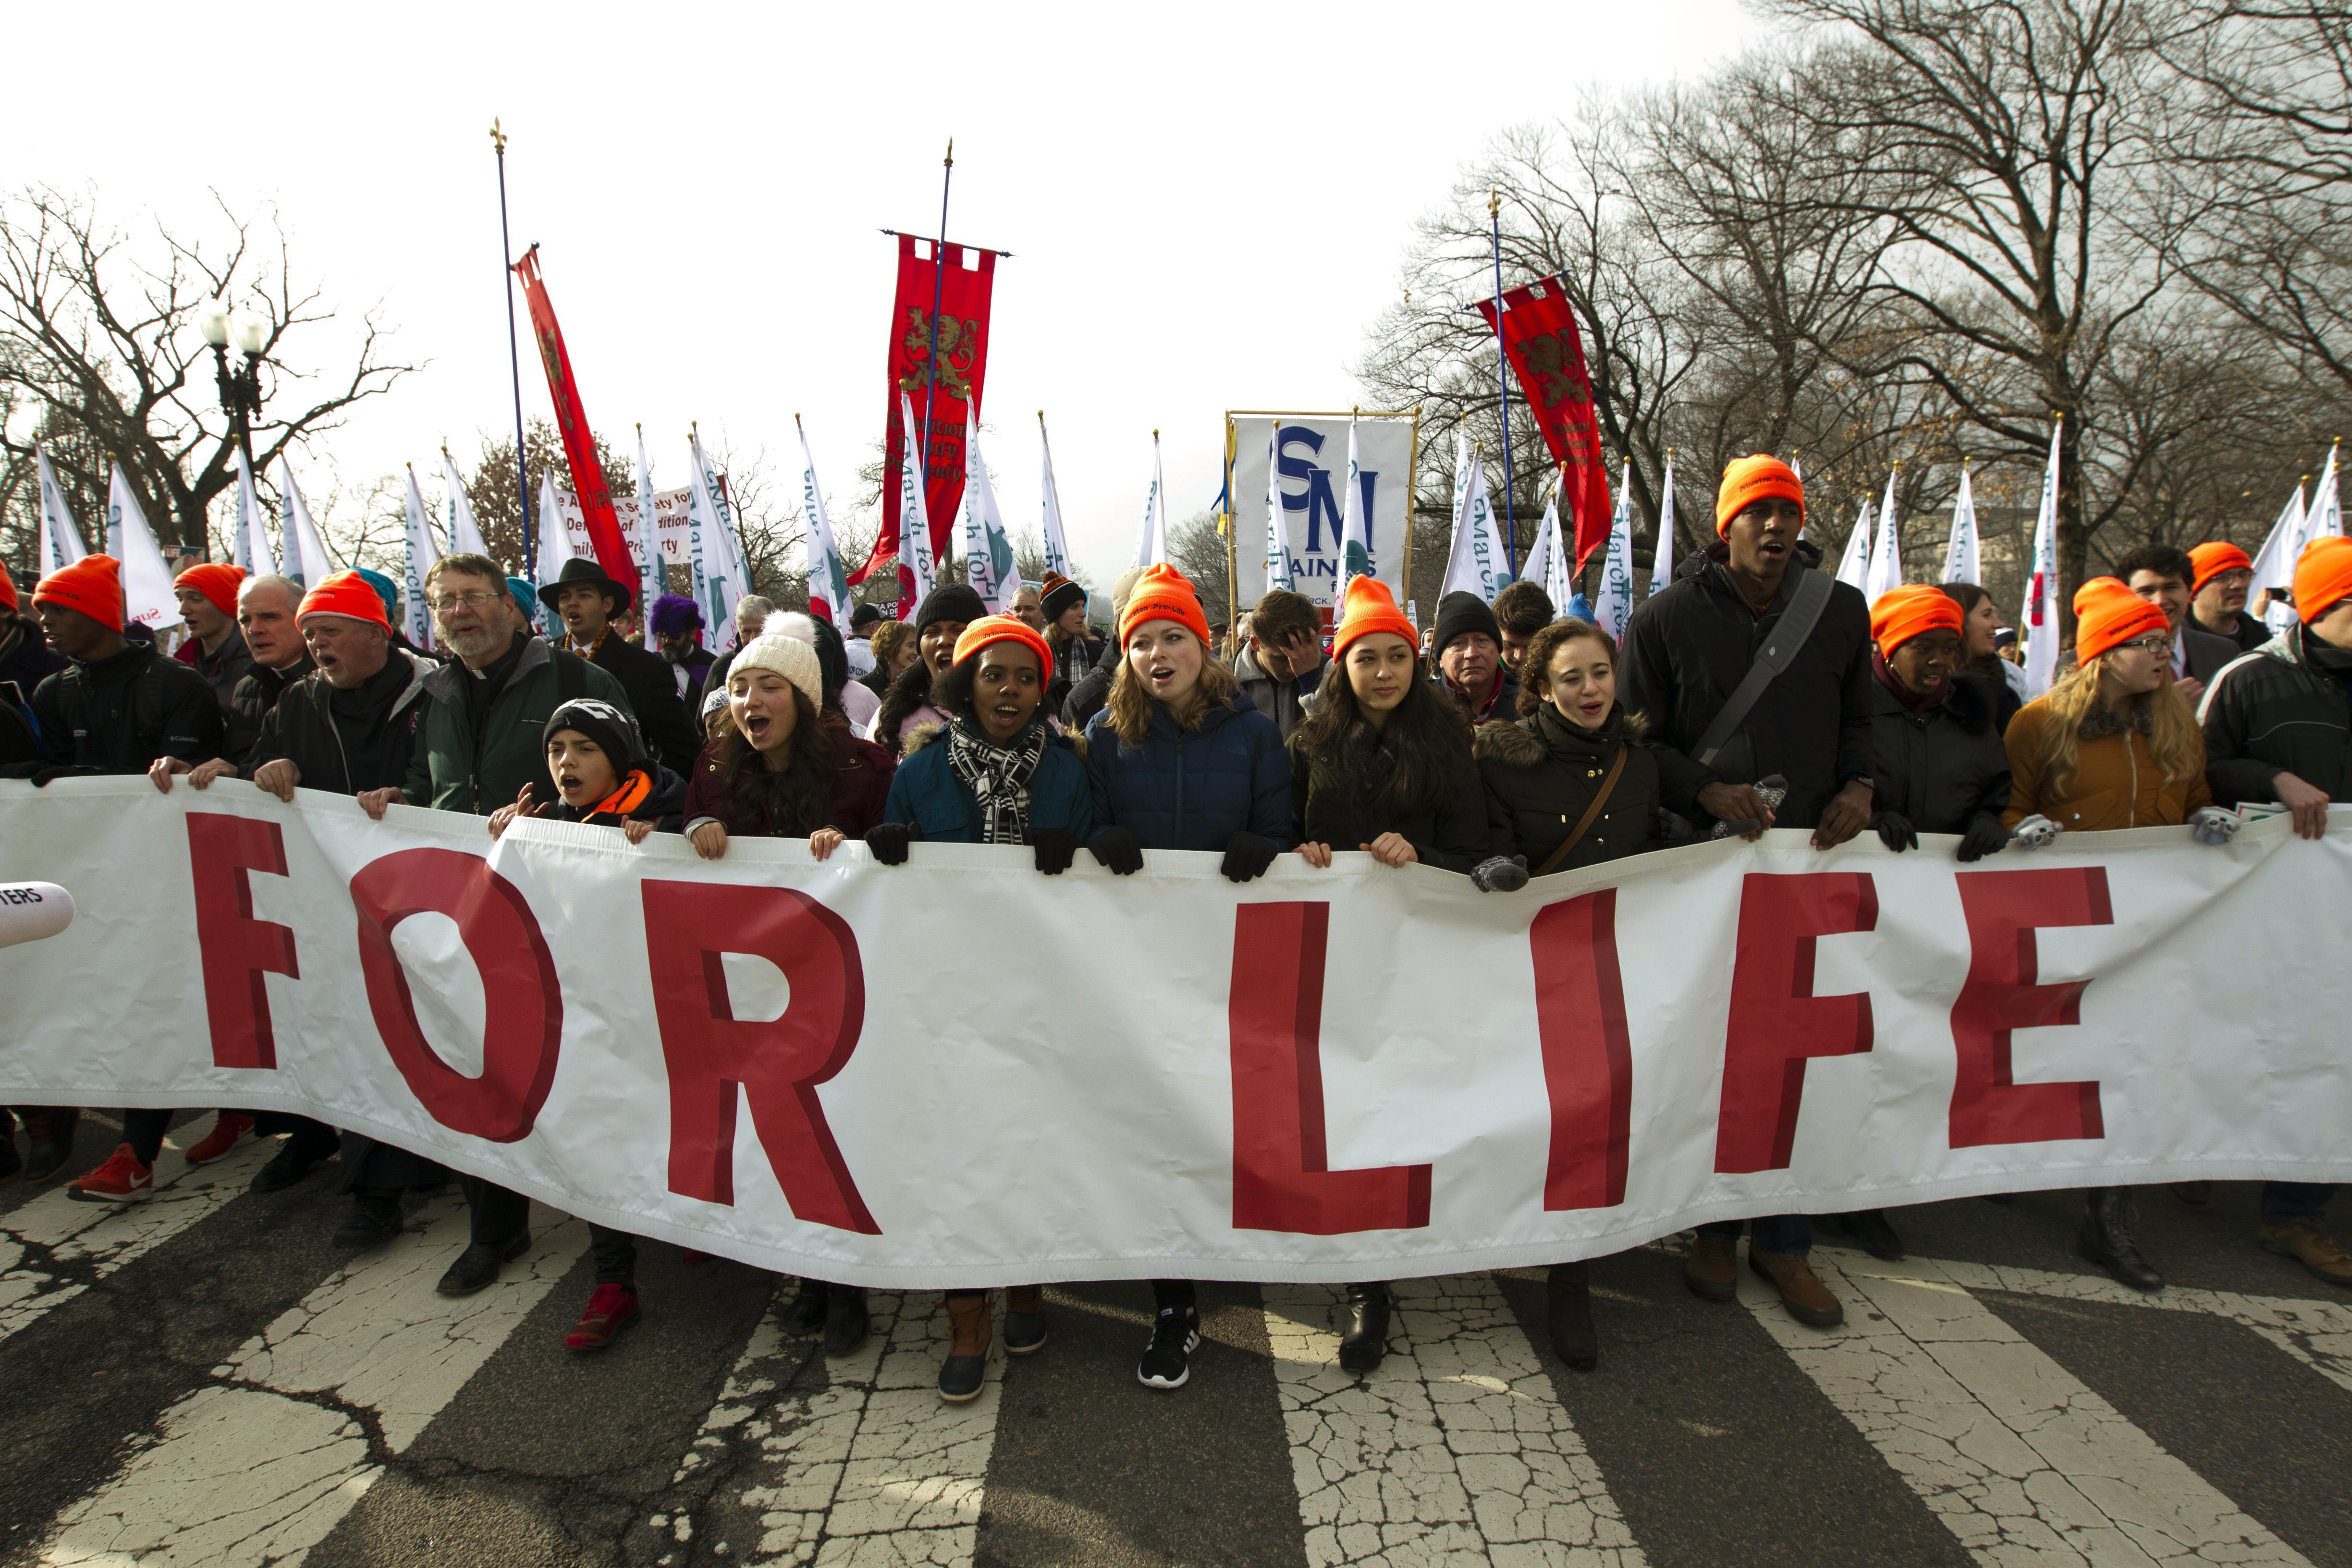 Participants in the March for Life head toward the Supreme Court on Jan. 19 in Washington, D.C.